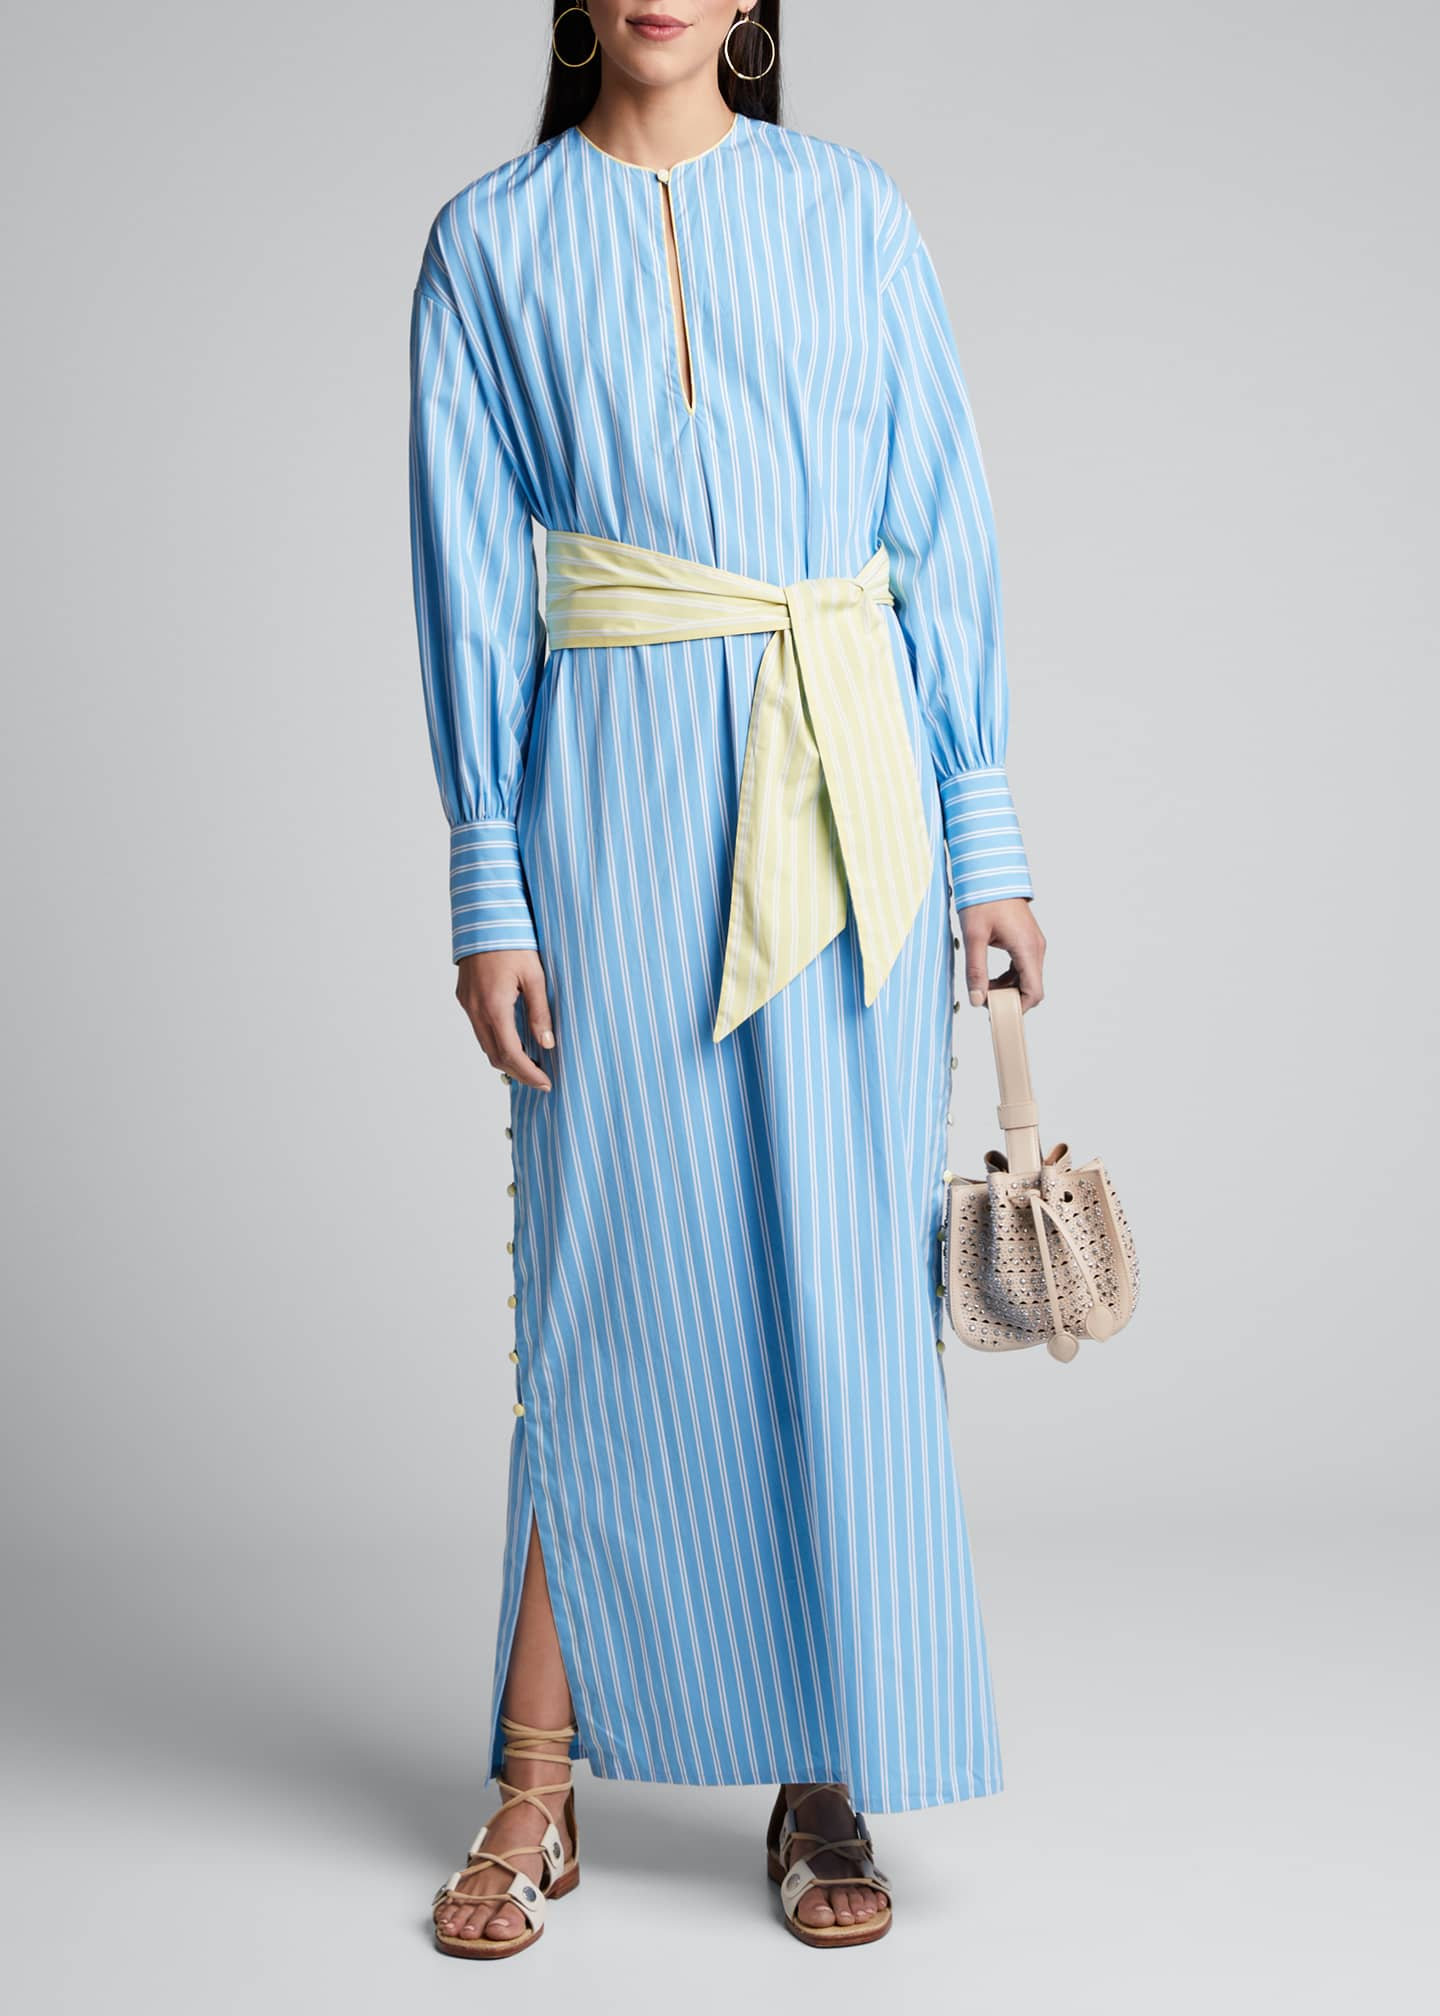 Evi Grintela Heather Striped Tie-Waist Caftan